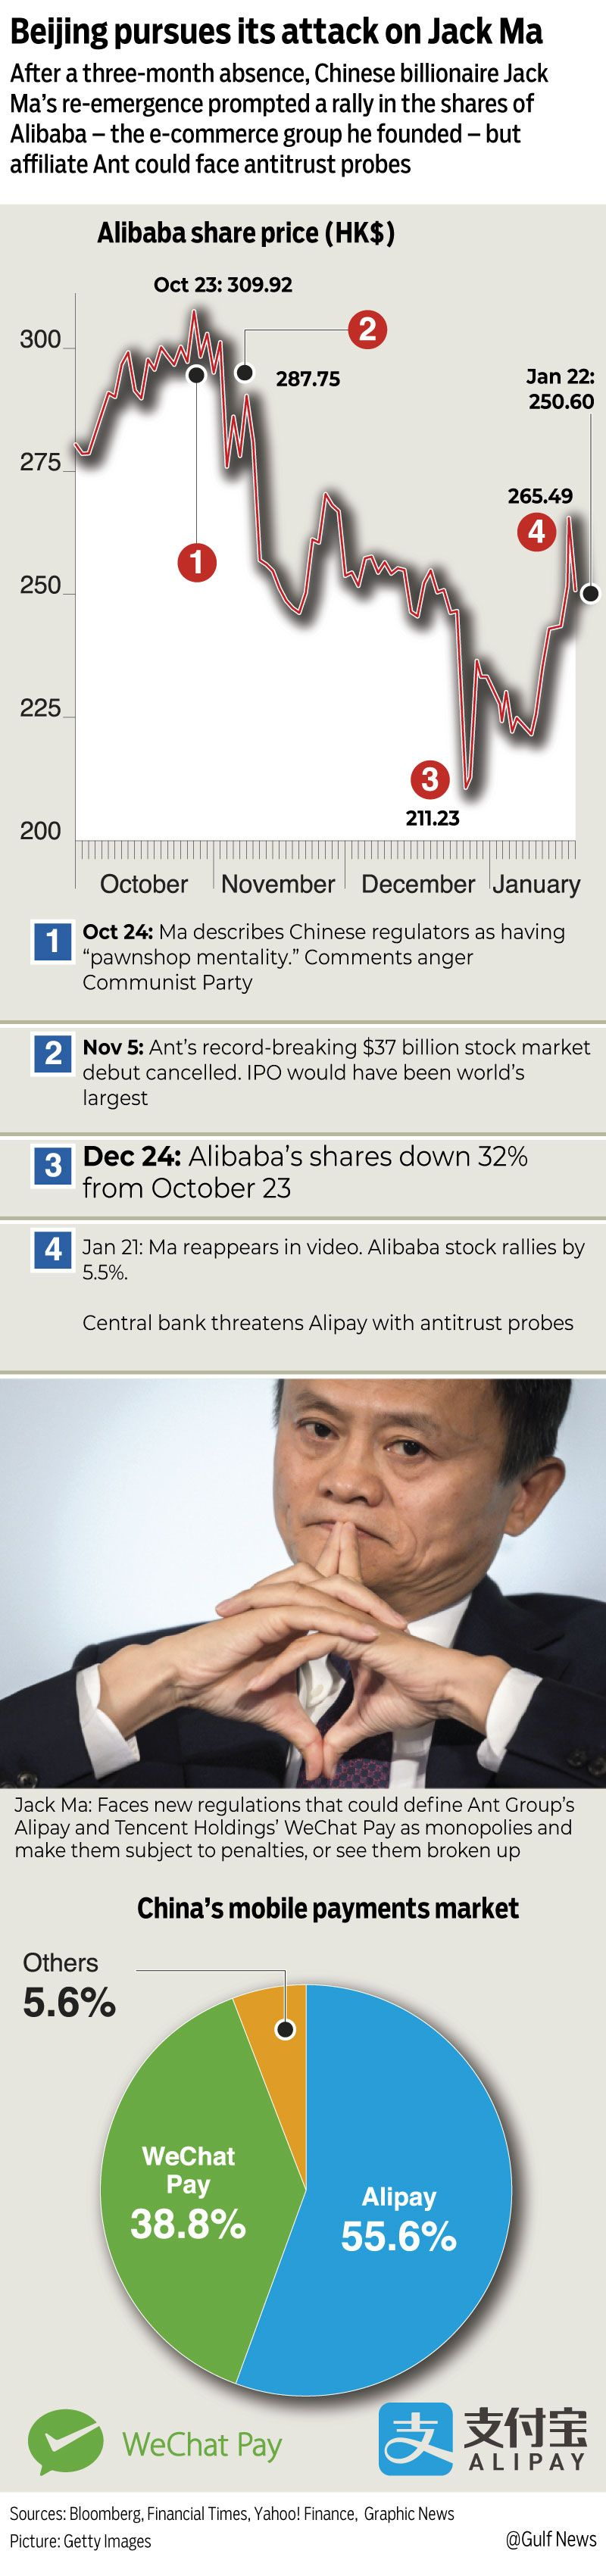 Beijing pursues its attack on Alibaba